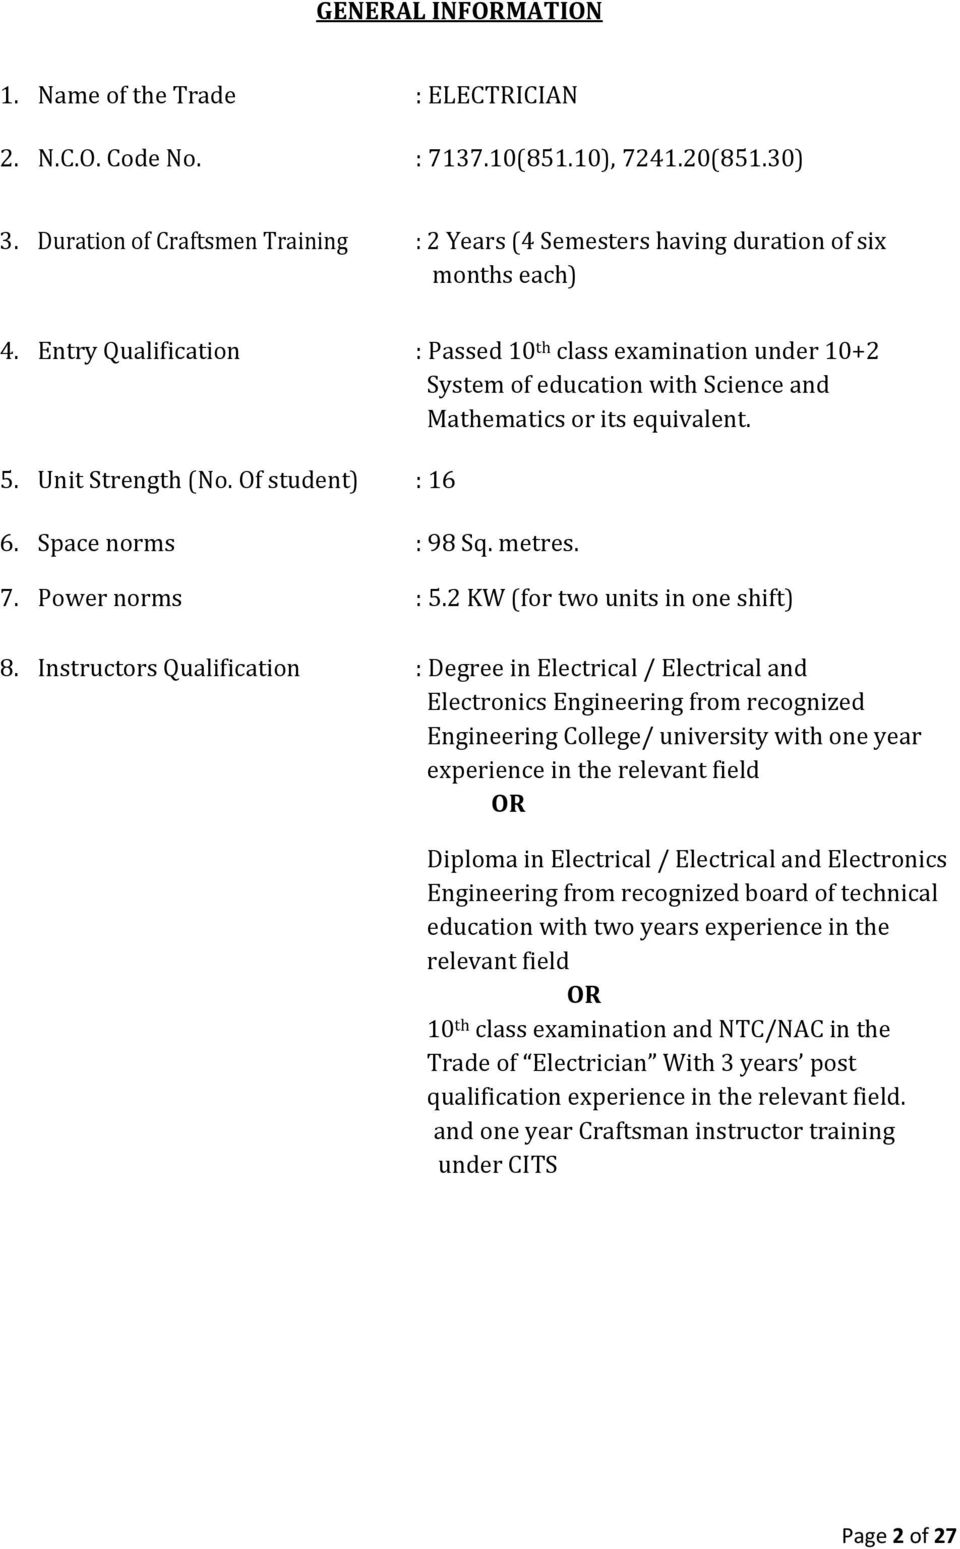 E L C T R I A N Pdf Gcse Physics How Does Circuit Breaker Work What Is An Mcb Entry Qualification Passed 10 Th Class Examination Under 2 System Of Education With